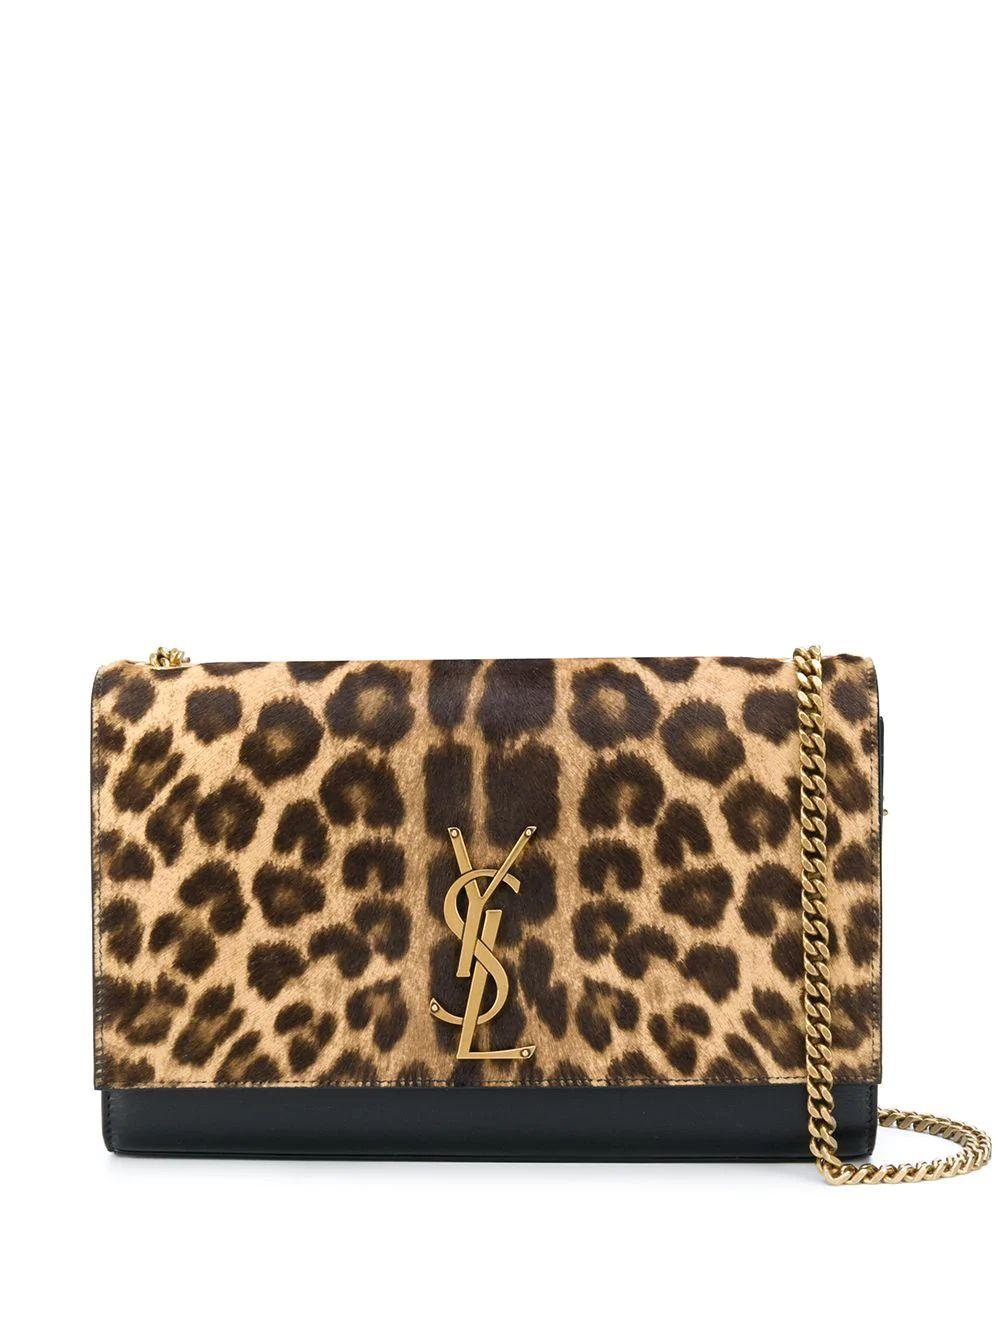 Kat Leopard Flap Logo Bag Item # 3640211ZR2W